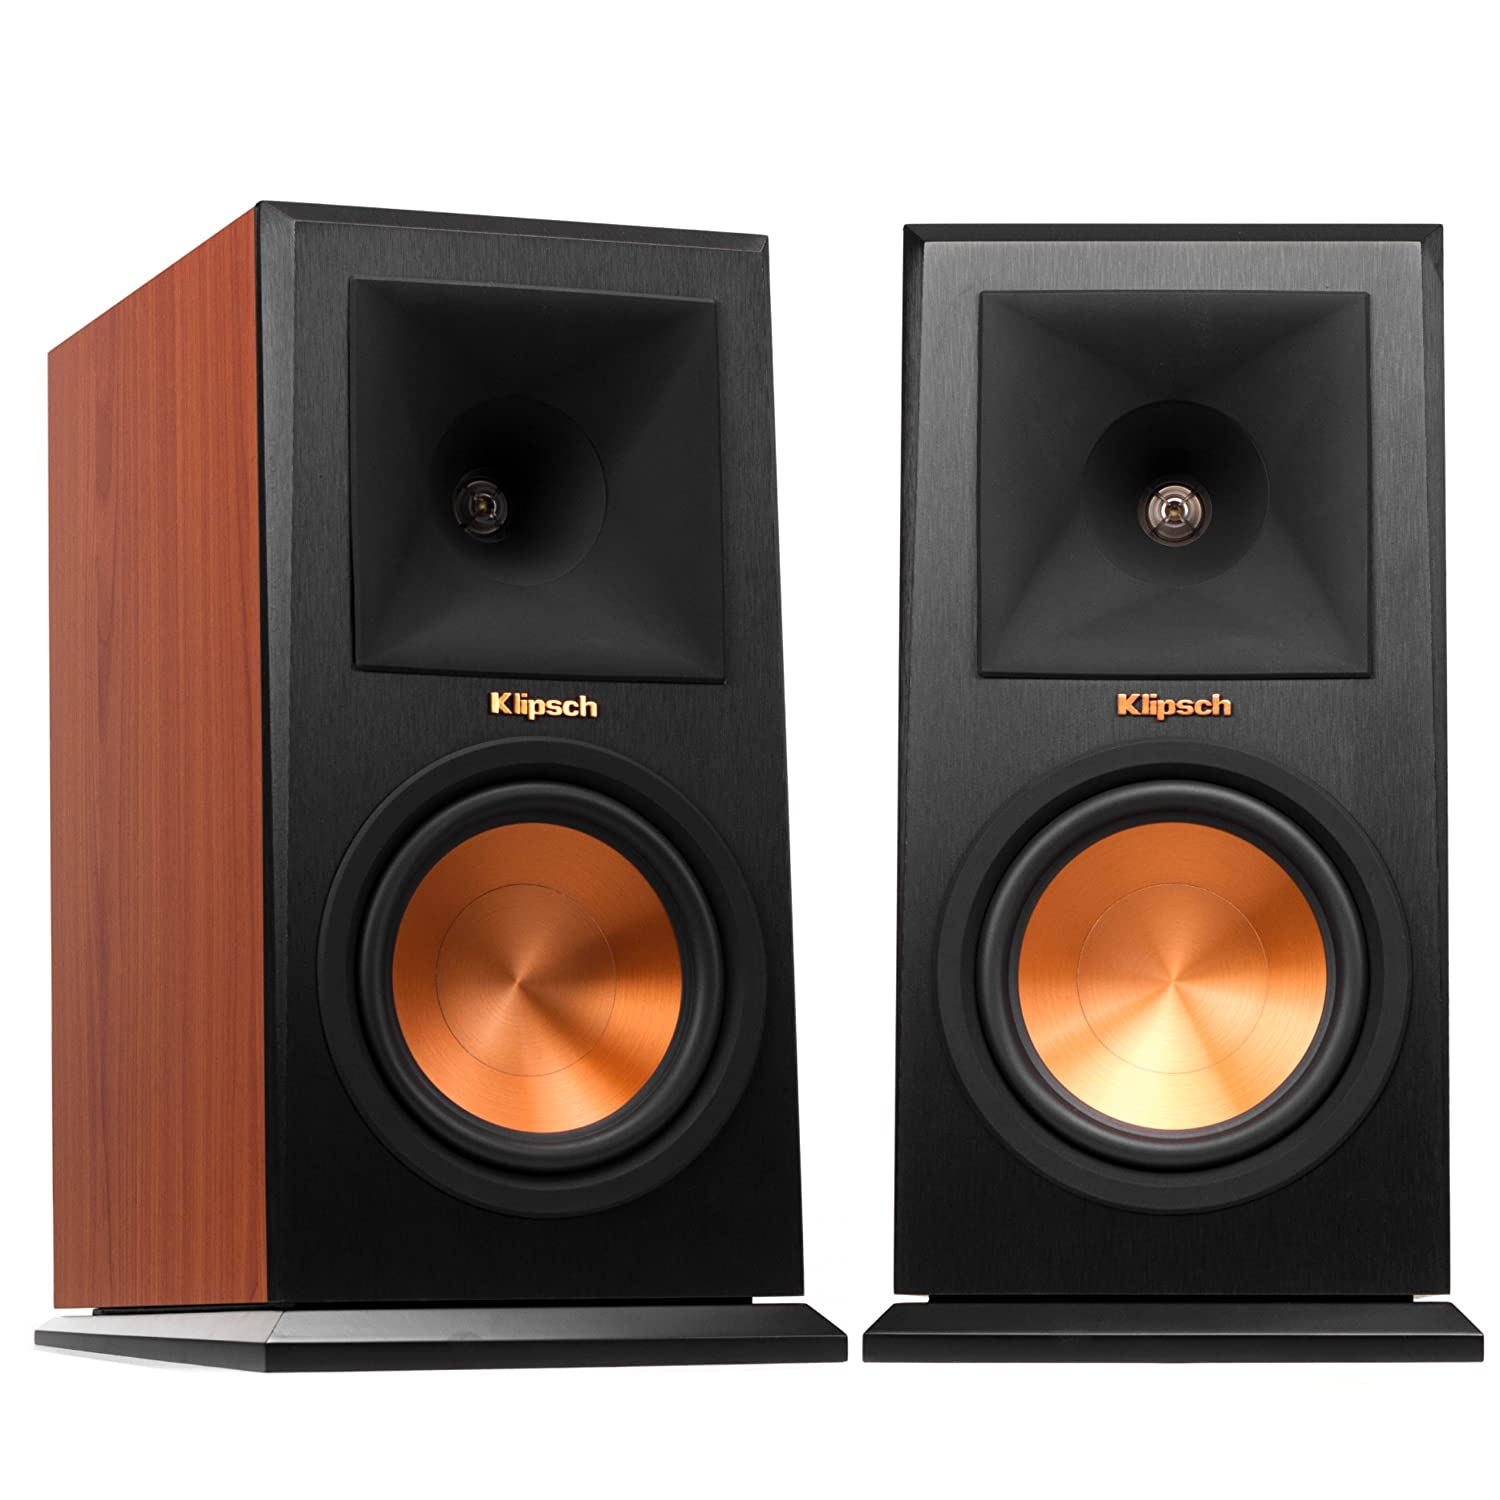 g h speakers bookshelf klipsch front